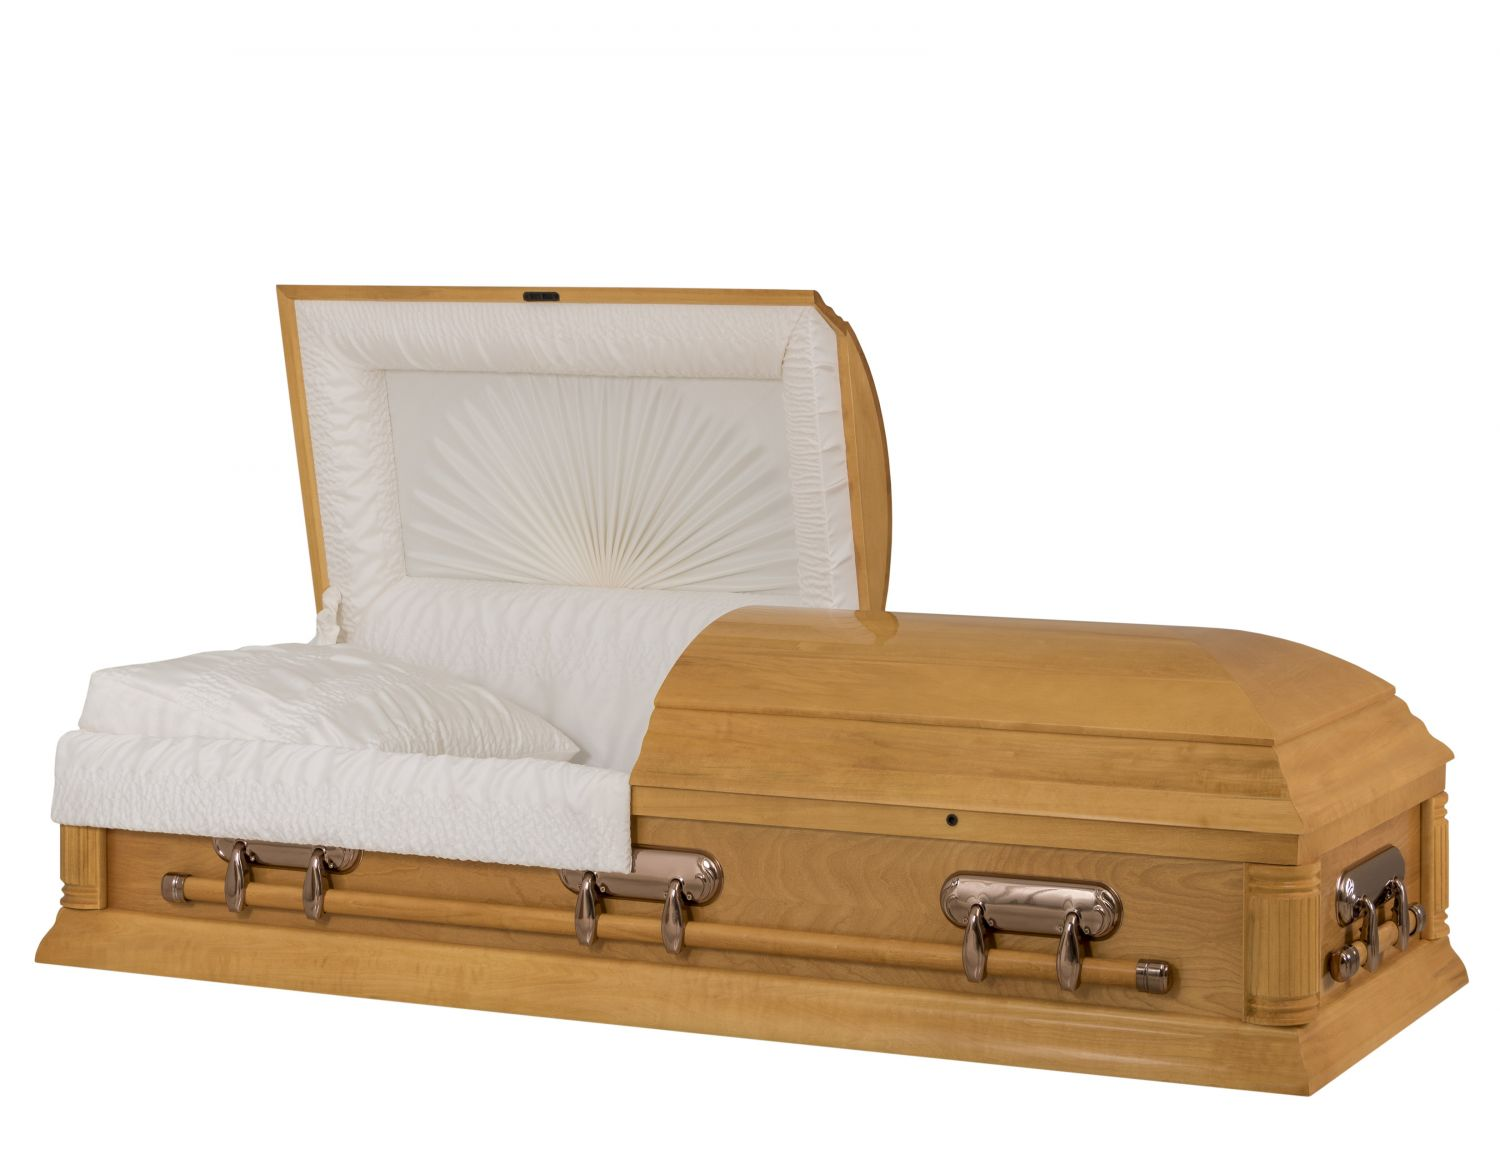 Concept Caskets 17204-00077-N POPLAR CASKET POLISHED CREPE LIGHT MAPLE MATRESS NO H2110-1    3 X 1 COPPER